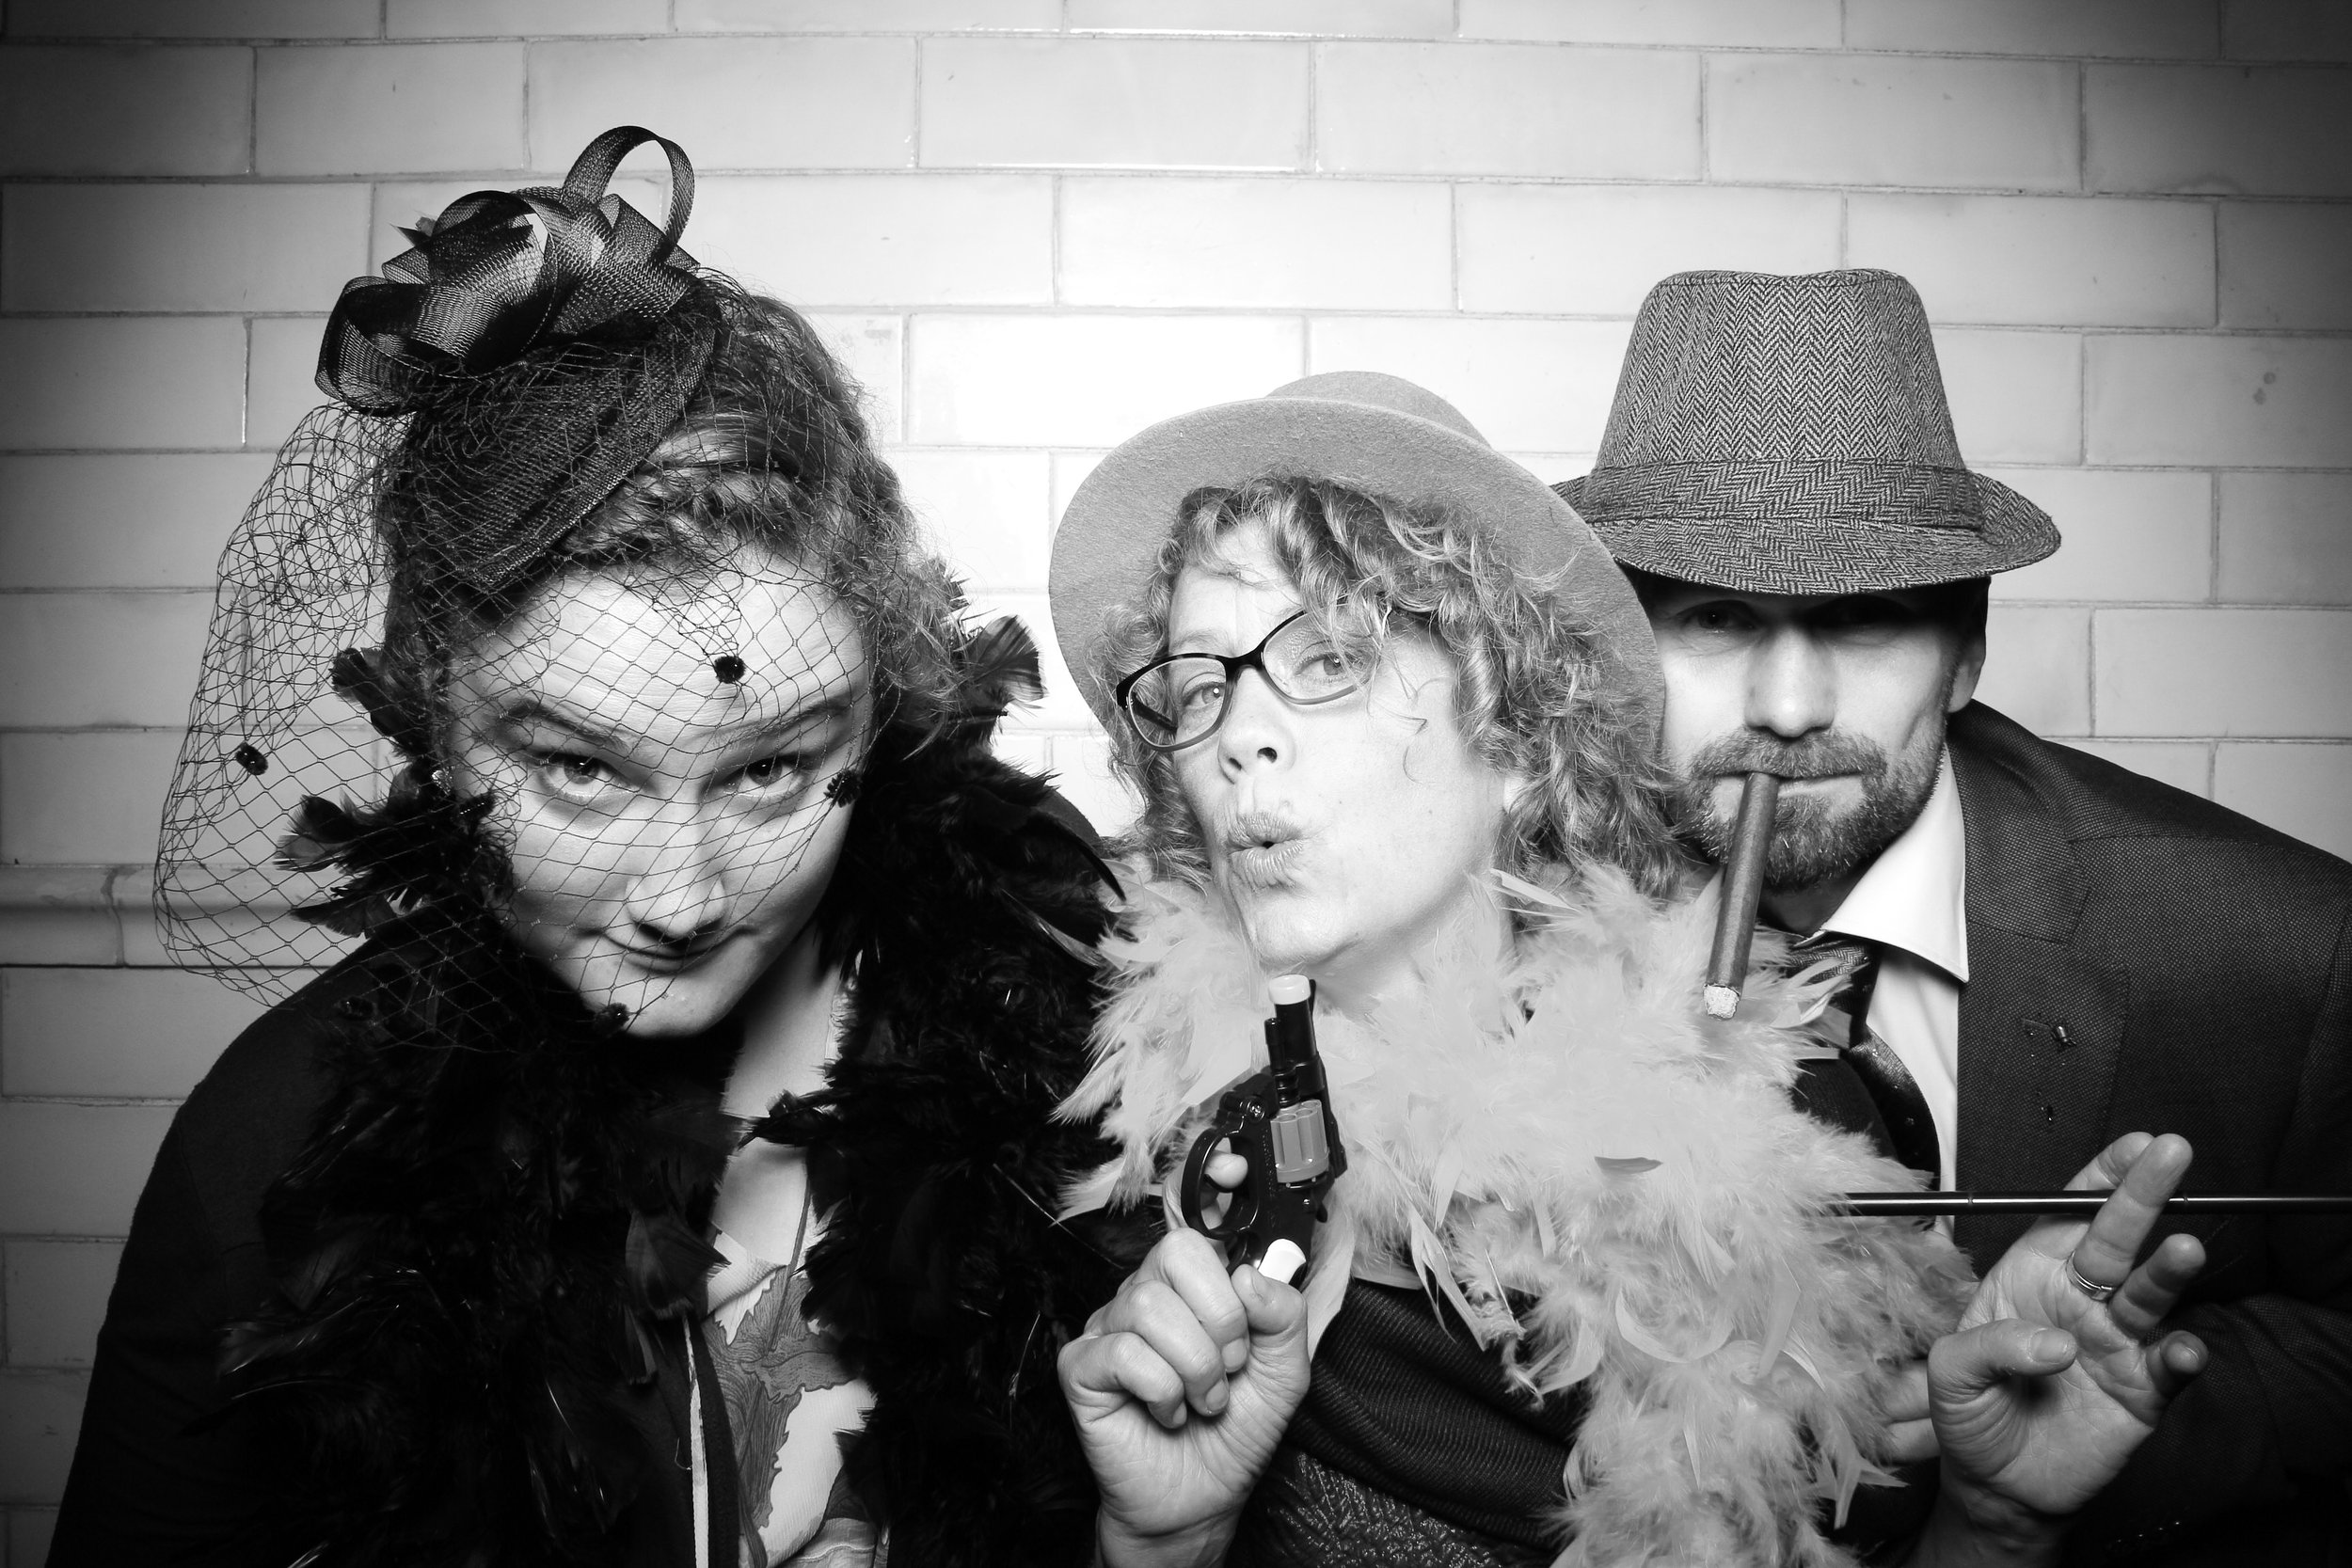 Firehouse_Chicago_Edgewater_Wedding_Reception_Photo_Booth_01.jpg